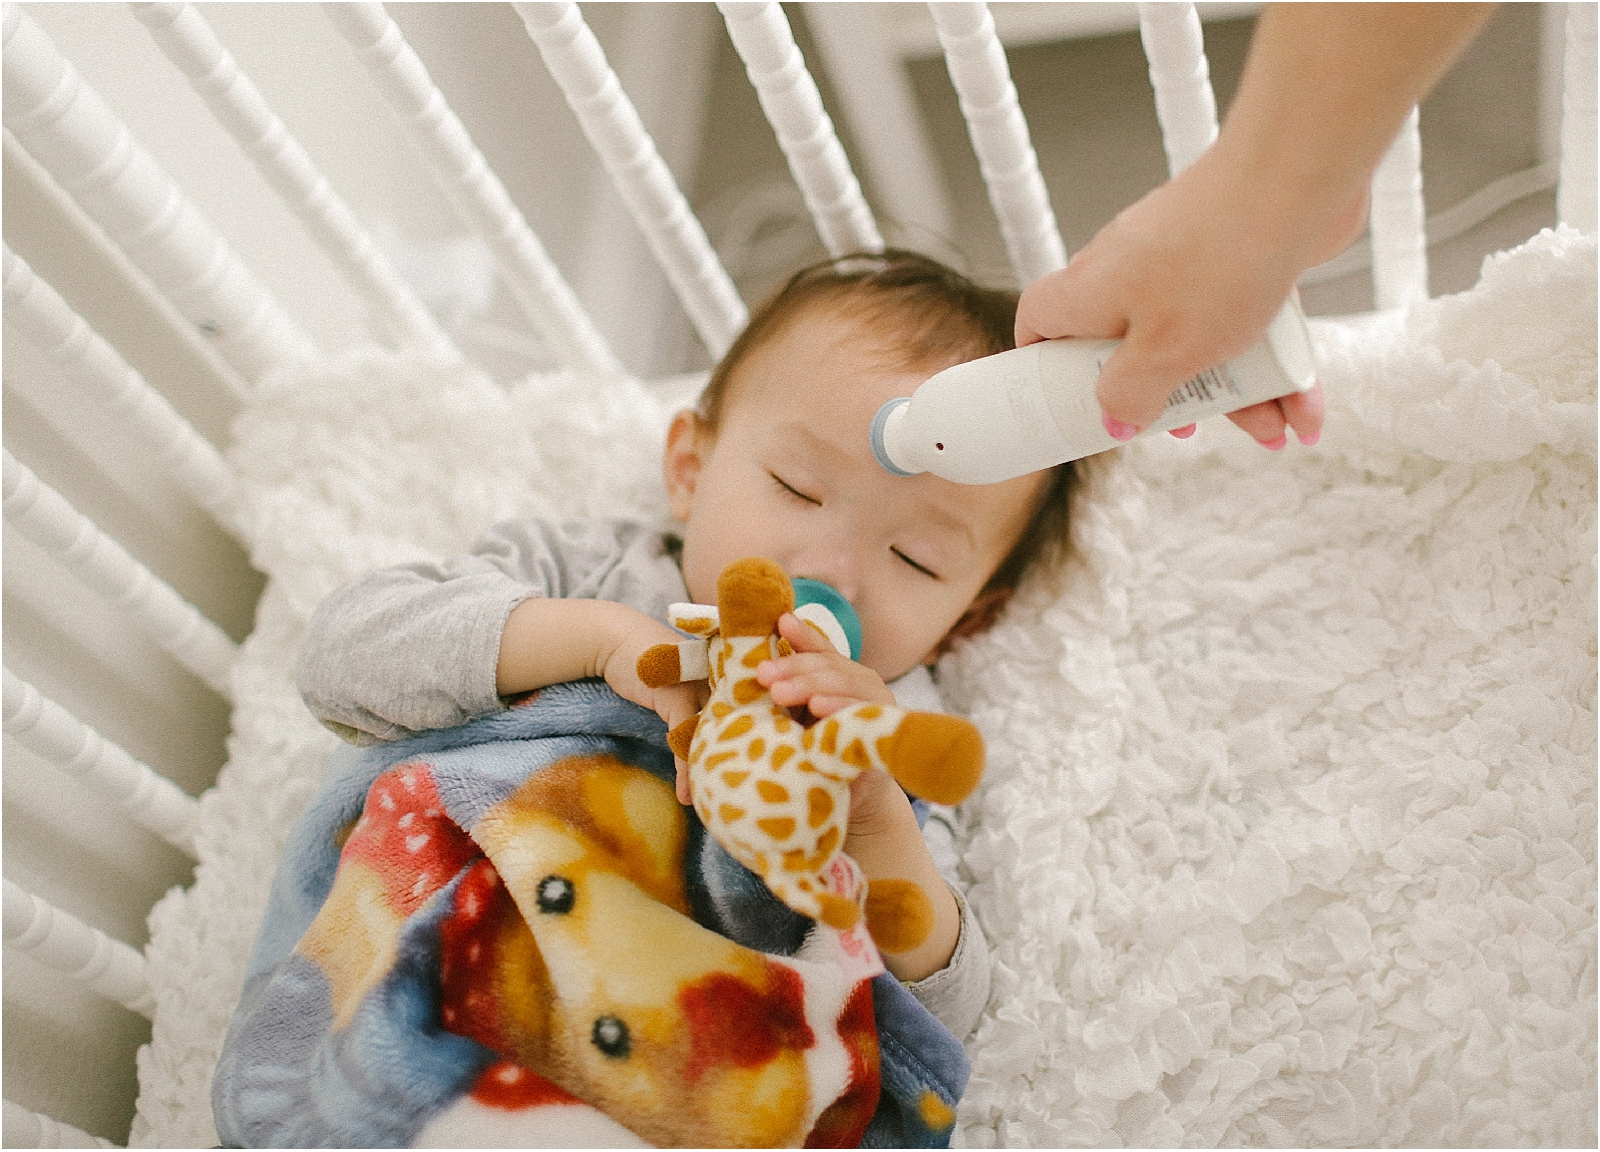 kids-safe-otc-medicine-cold-flu-season_0004